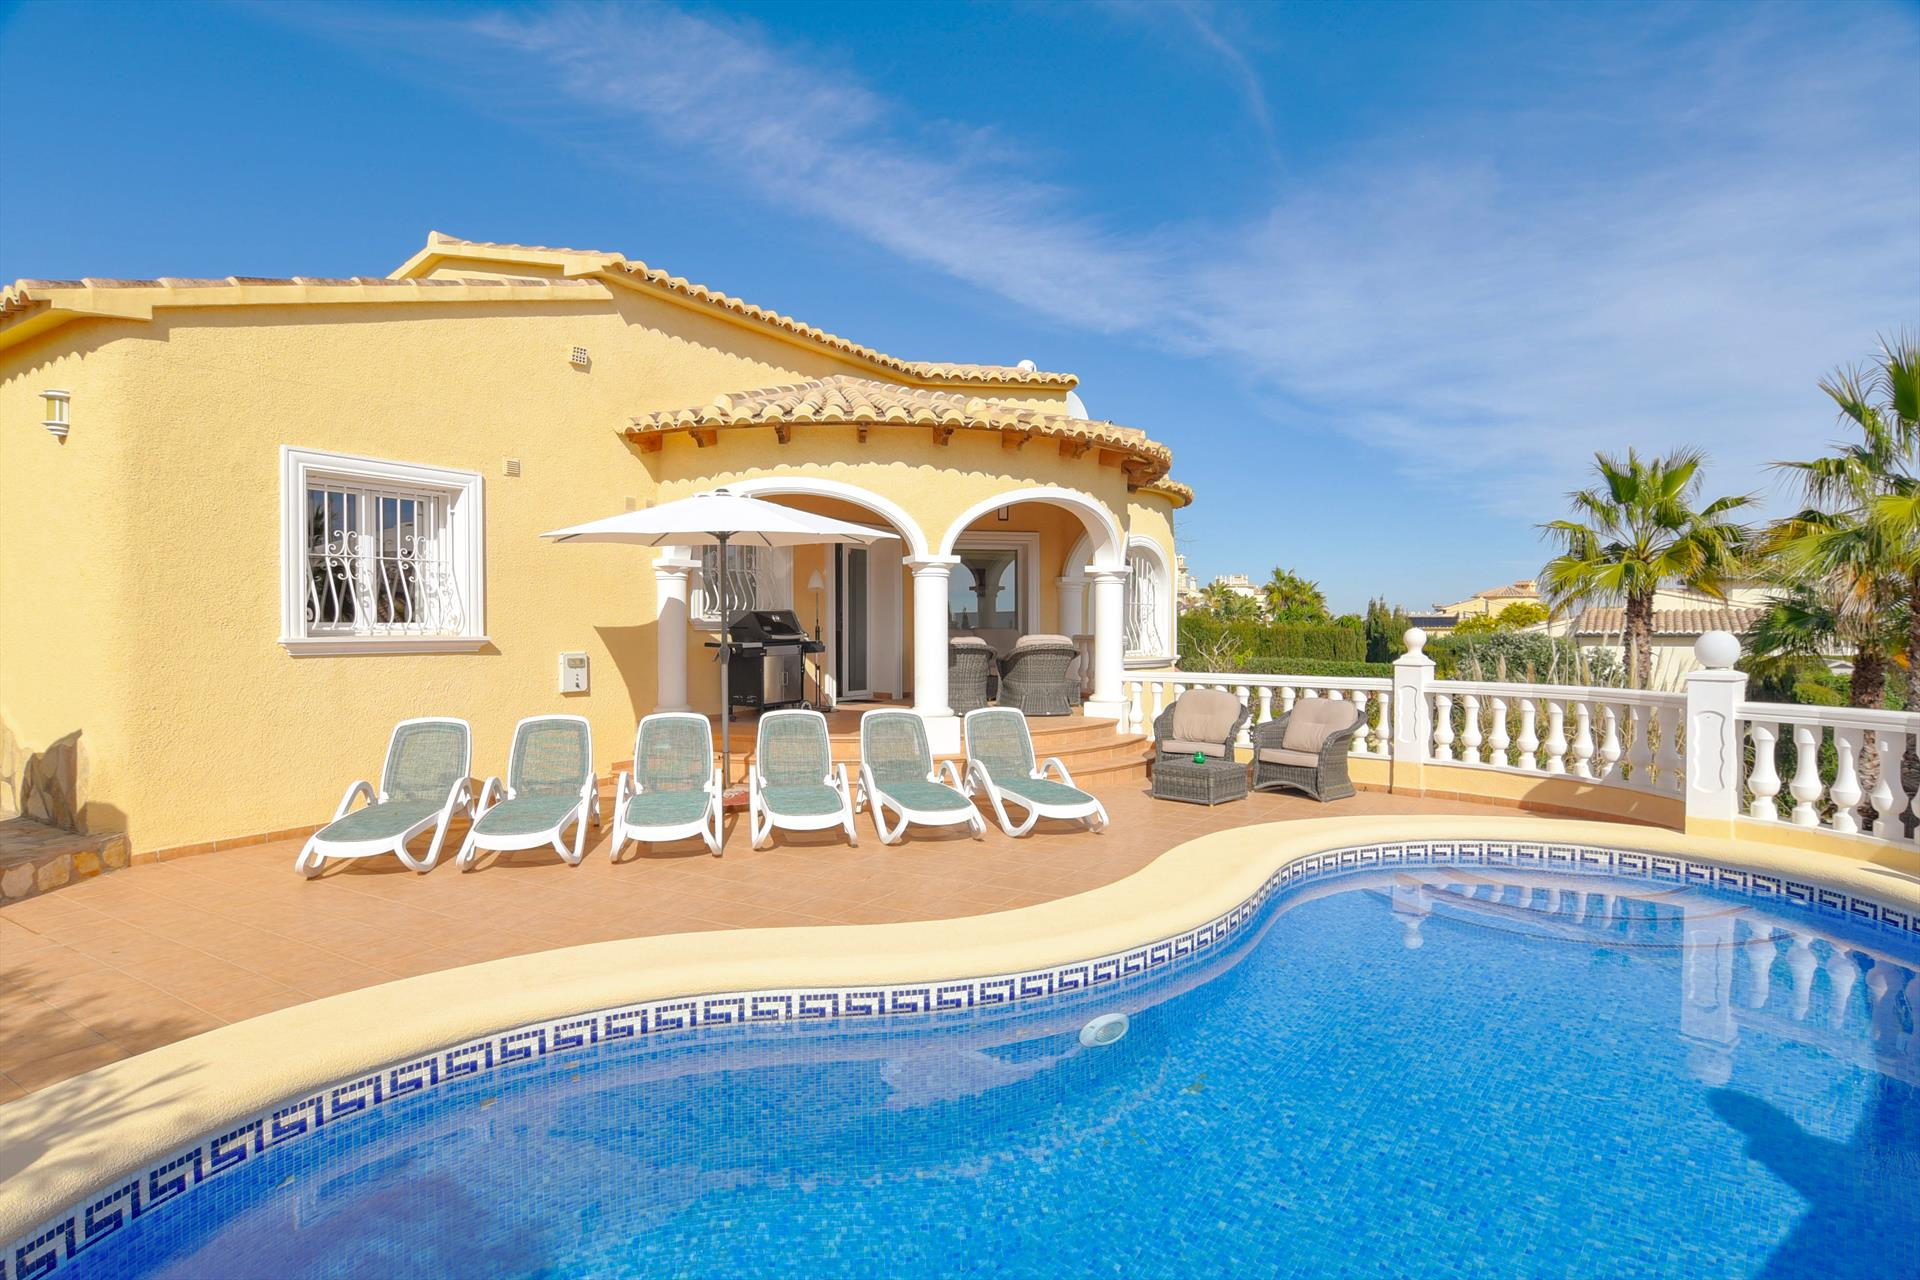 Biamar, Villa  with private pool in Benitachell, on the Costa Blanca, Spain for 6 persons...